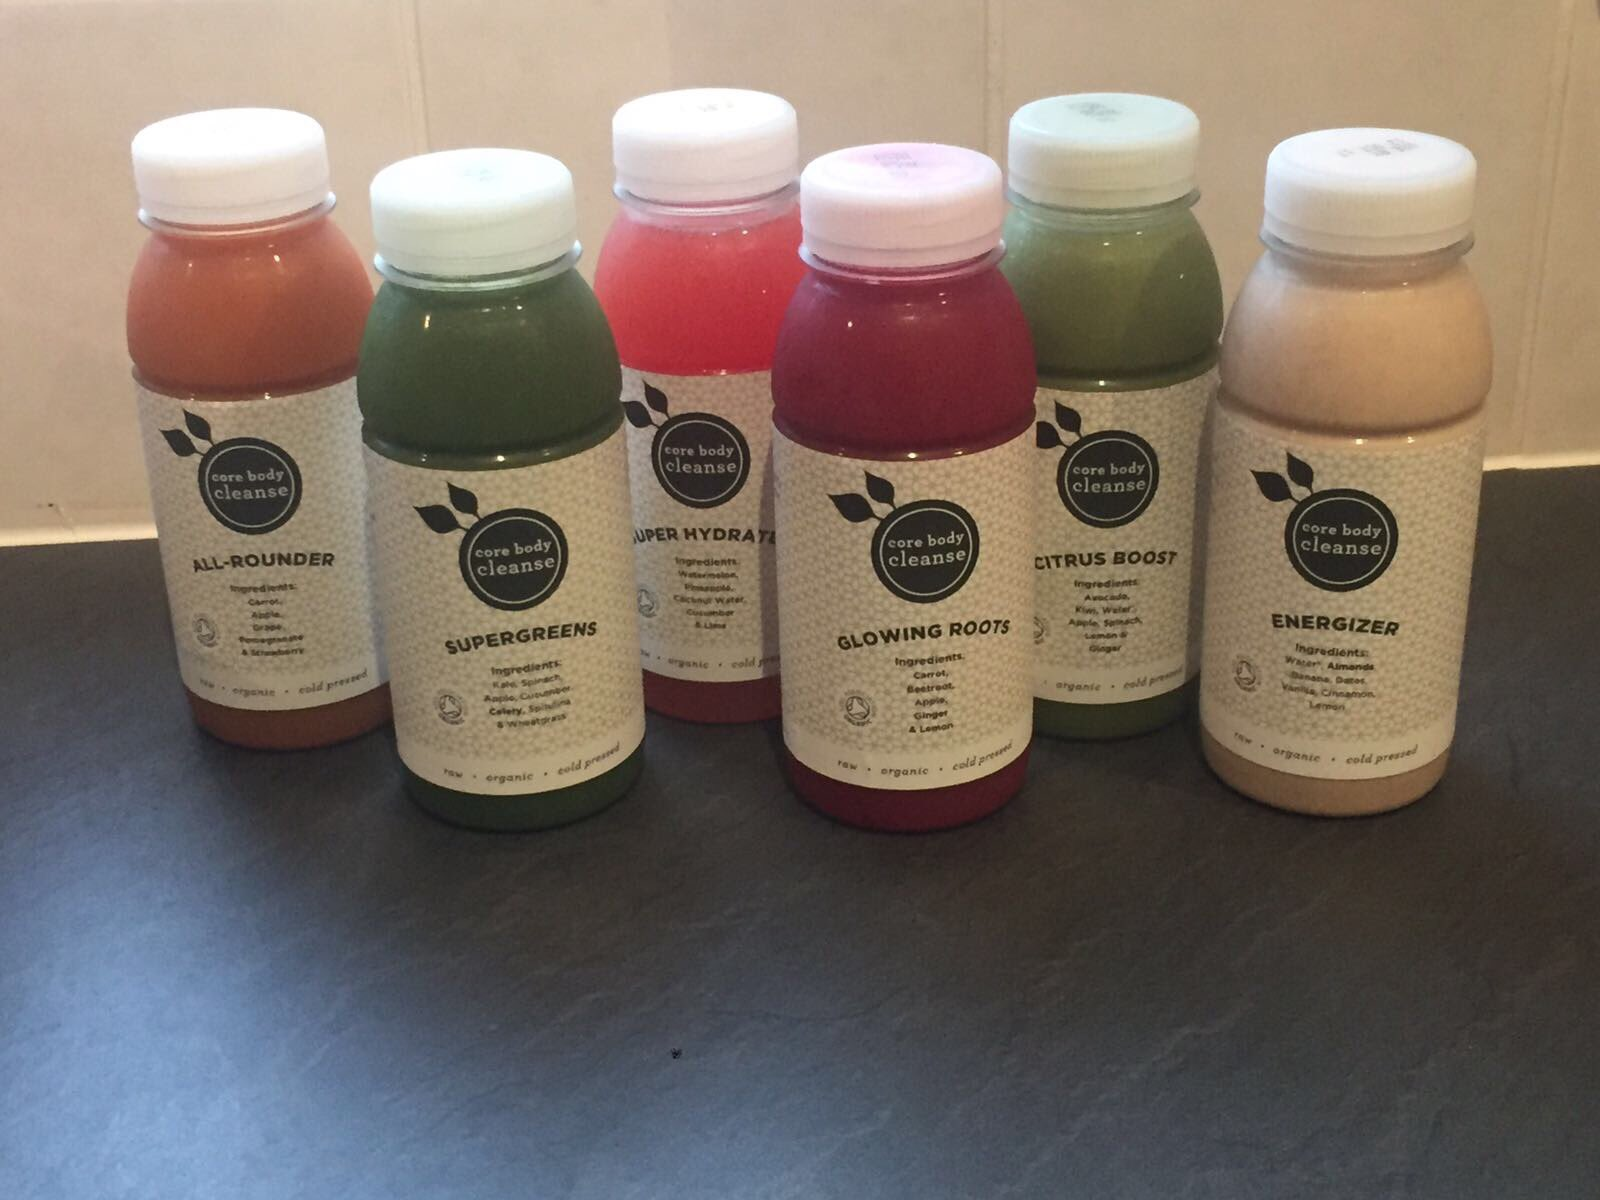 Just what I need before tour! A complete detox! ��excited for this! @corebodycleanse Leigh x https://t.co/53vYk5aN1Q